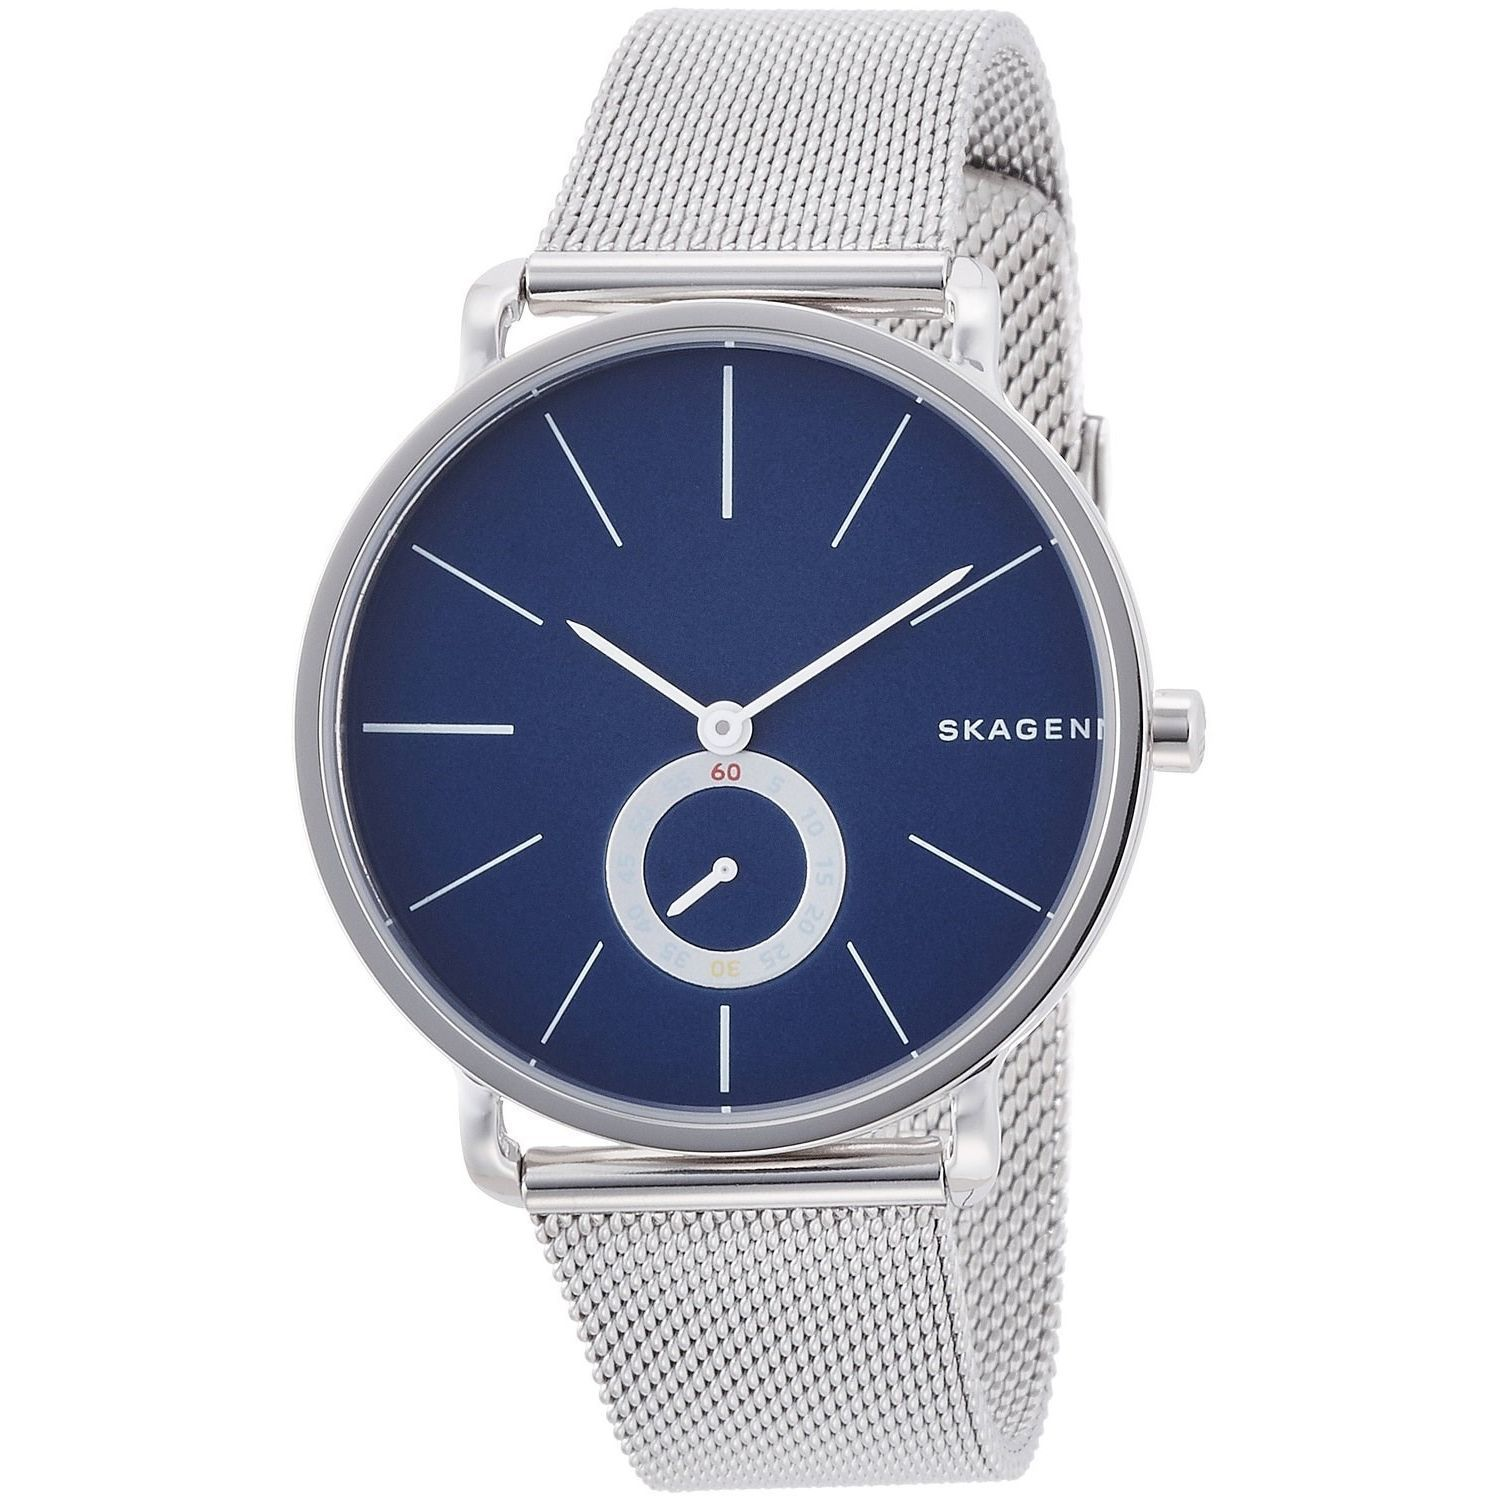 hagen watches zoom man slim watch time only htm skagen en